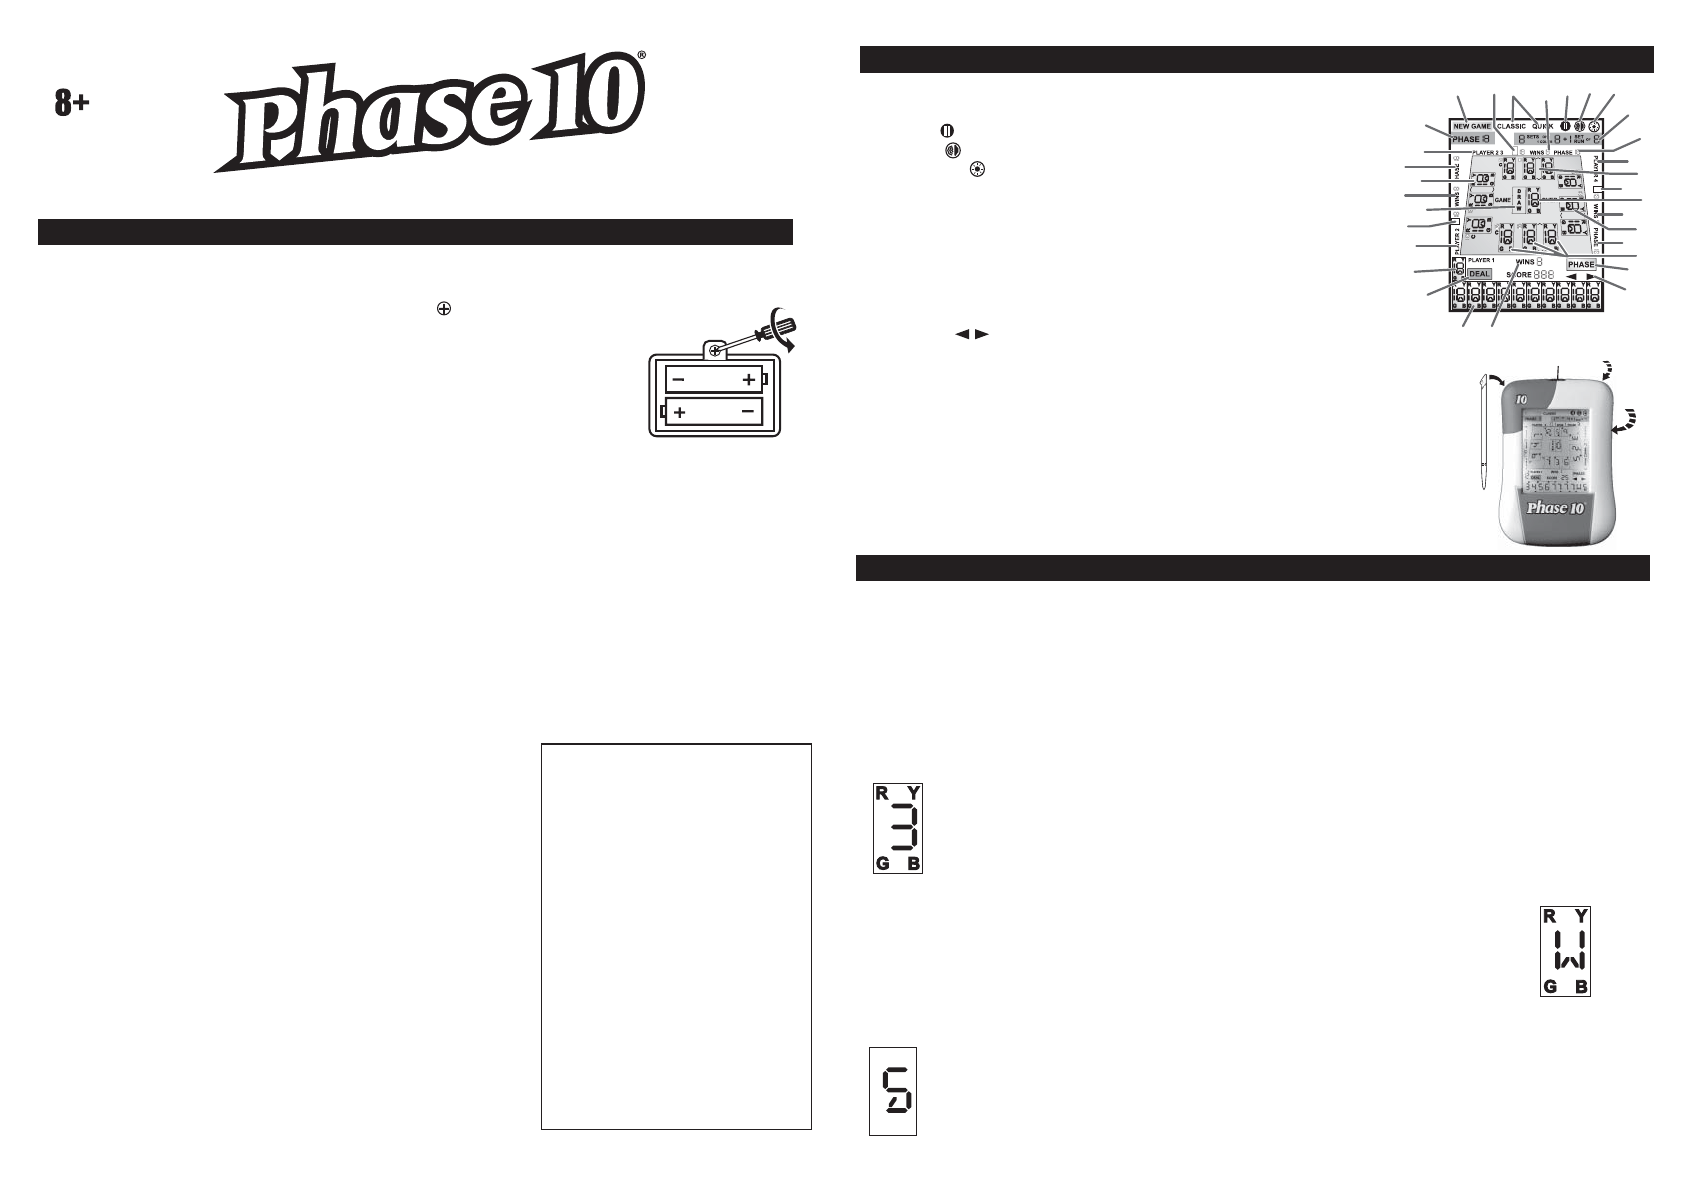 Techno Source Handheld Game System Phase 10 User Guide